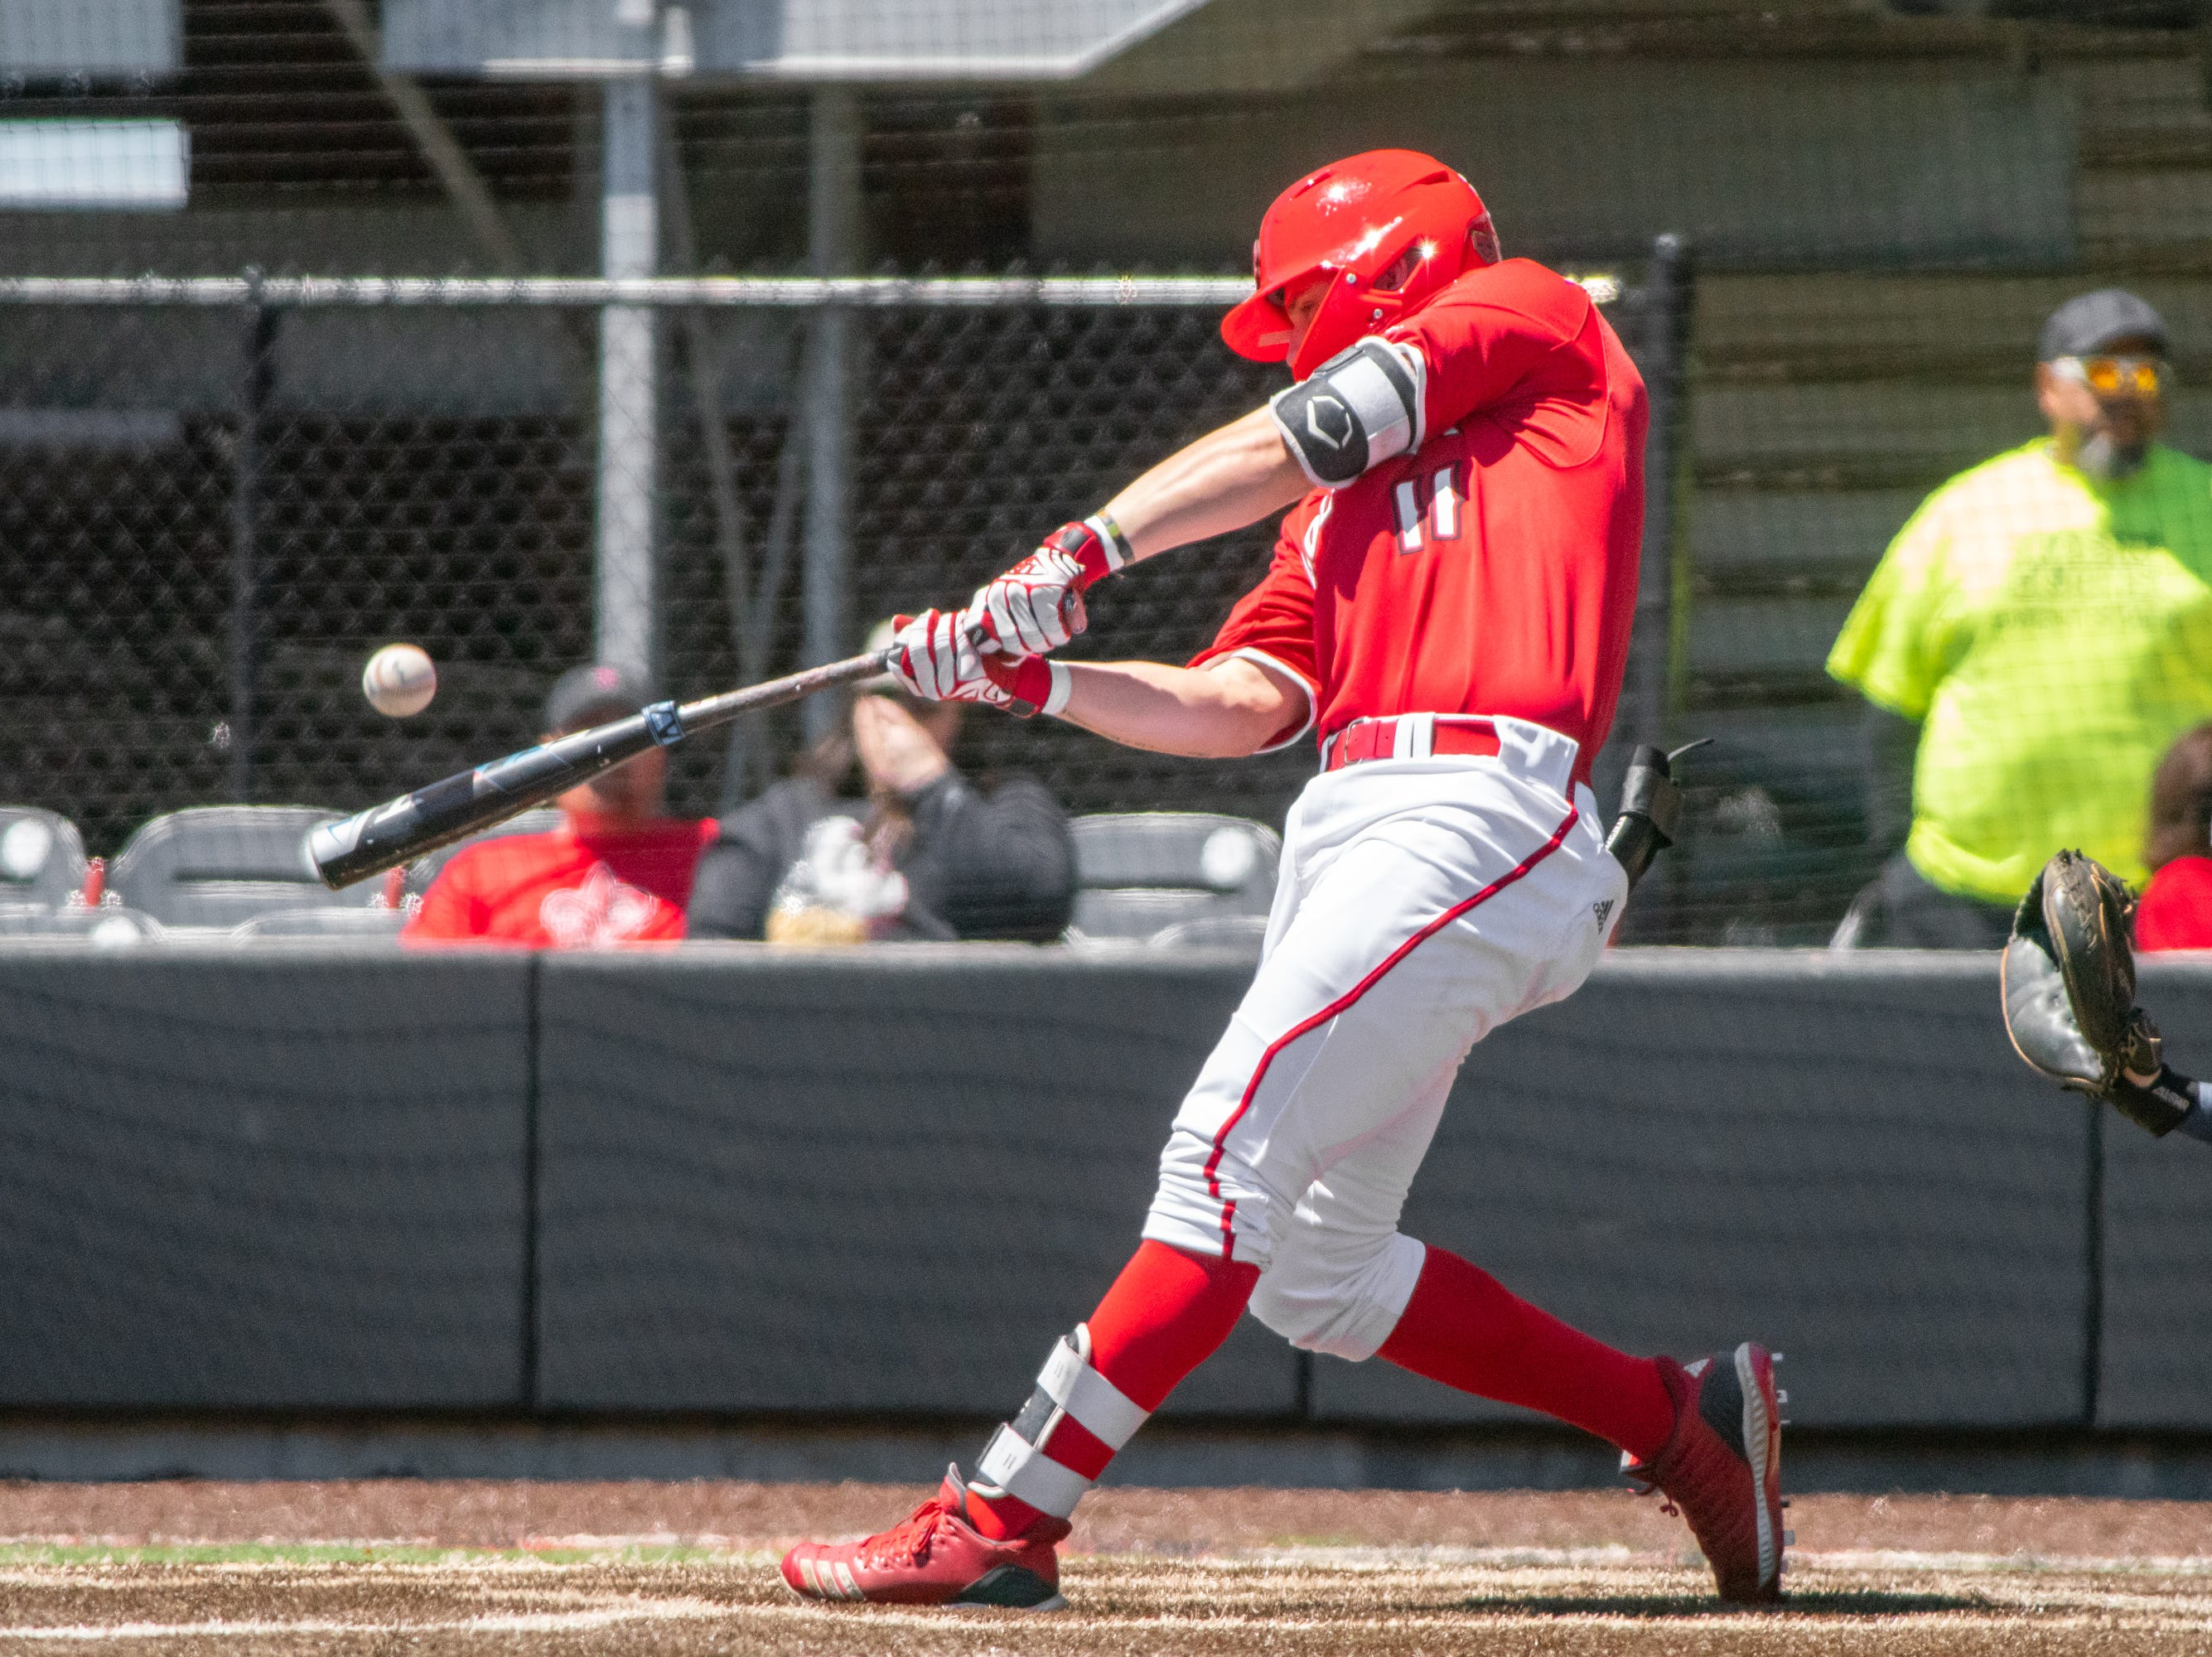 """UL's Kole McKinnon makes contact with the pitch as the Ragin' Cajuns take on the South Alabama Jaguars at M.L. """"Tigue"""" Moore Field on Sunday, April 14, 2019."""